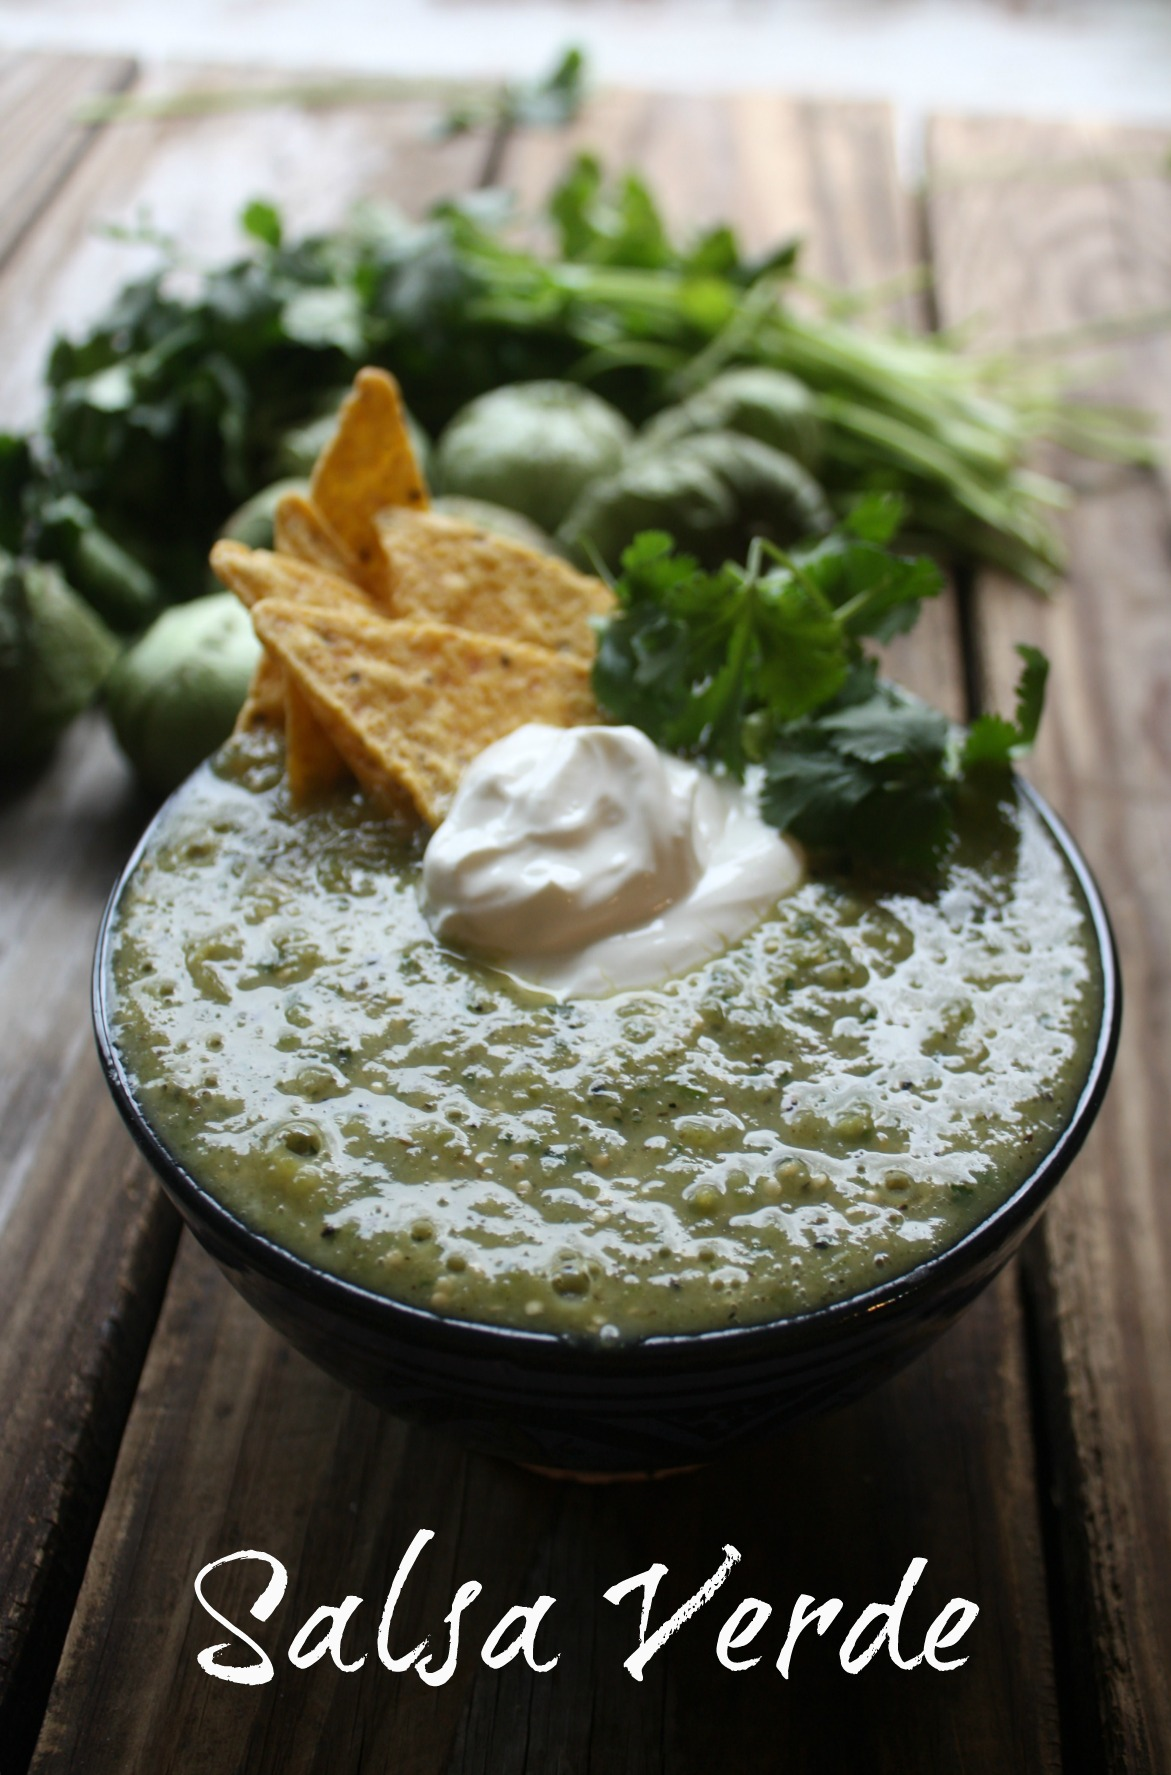 This Salsa Verde or Green Salsa is a roasted blend of tomatillos, jalapenos, garlic and onion that get a whirl in a blender with fresh cilantro and lime juice to make the best and easiest Salsa Verde.